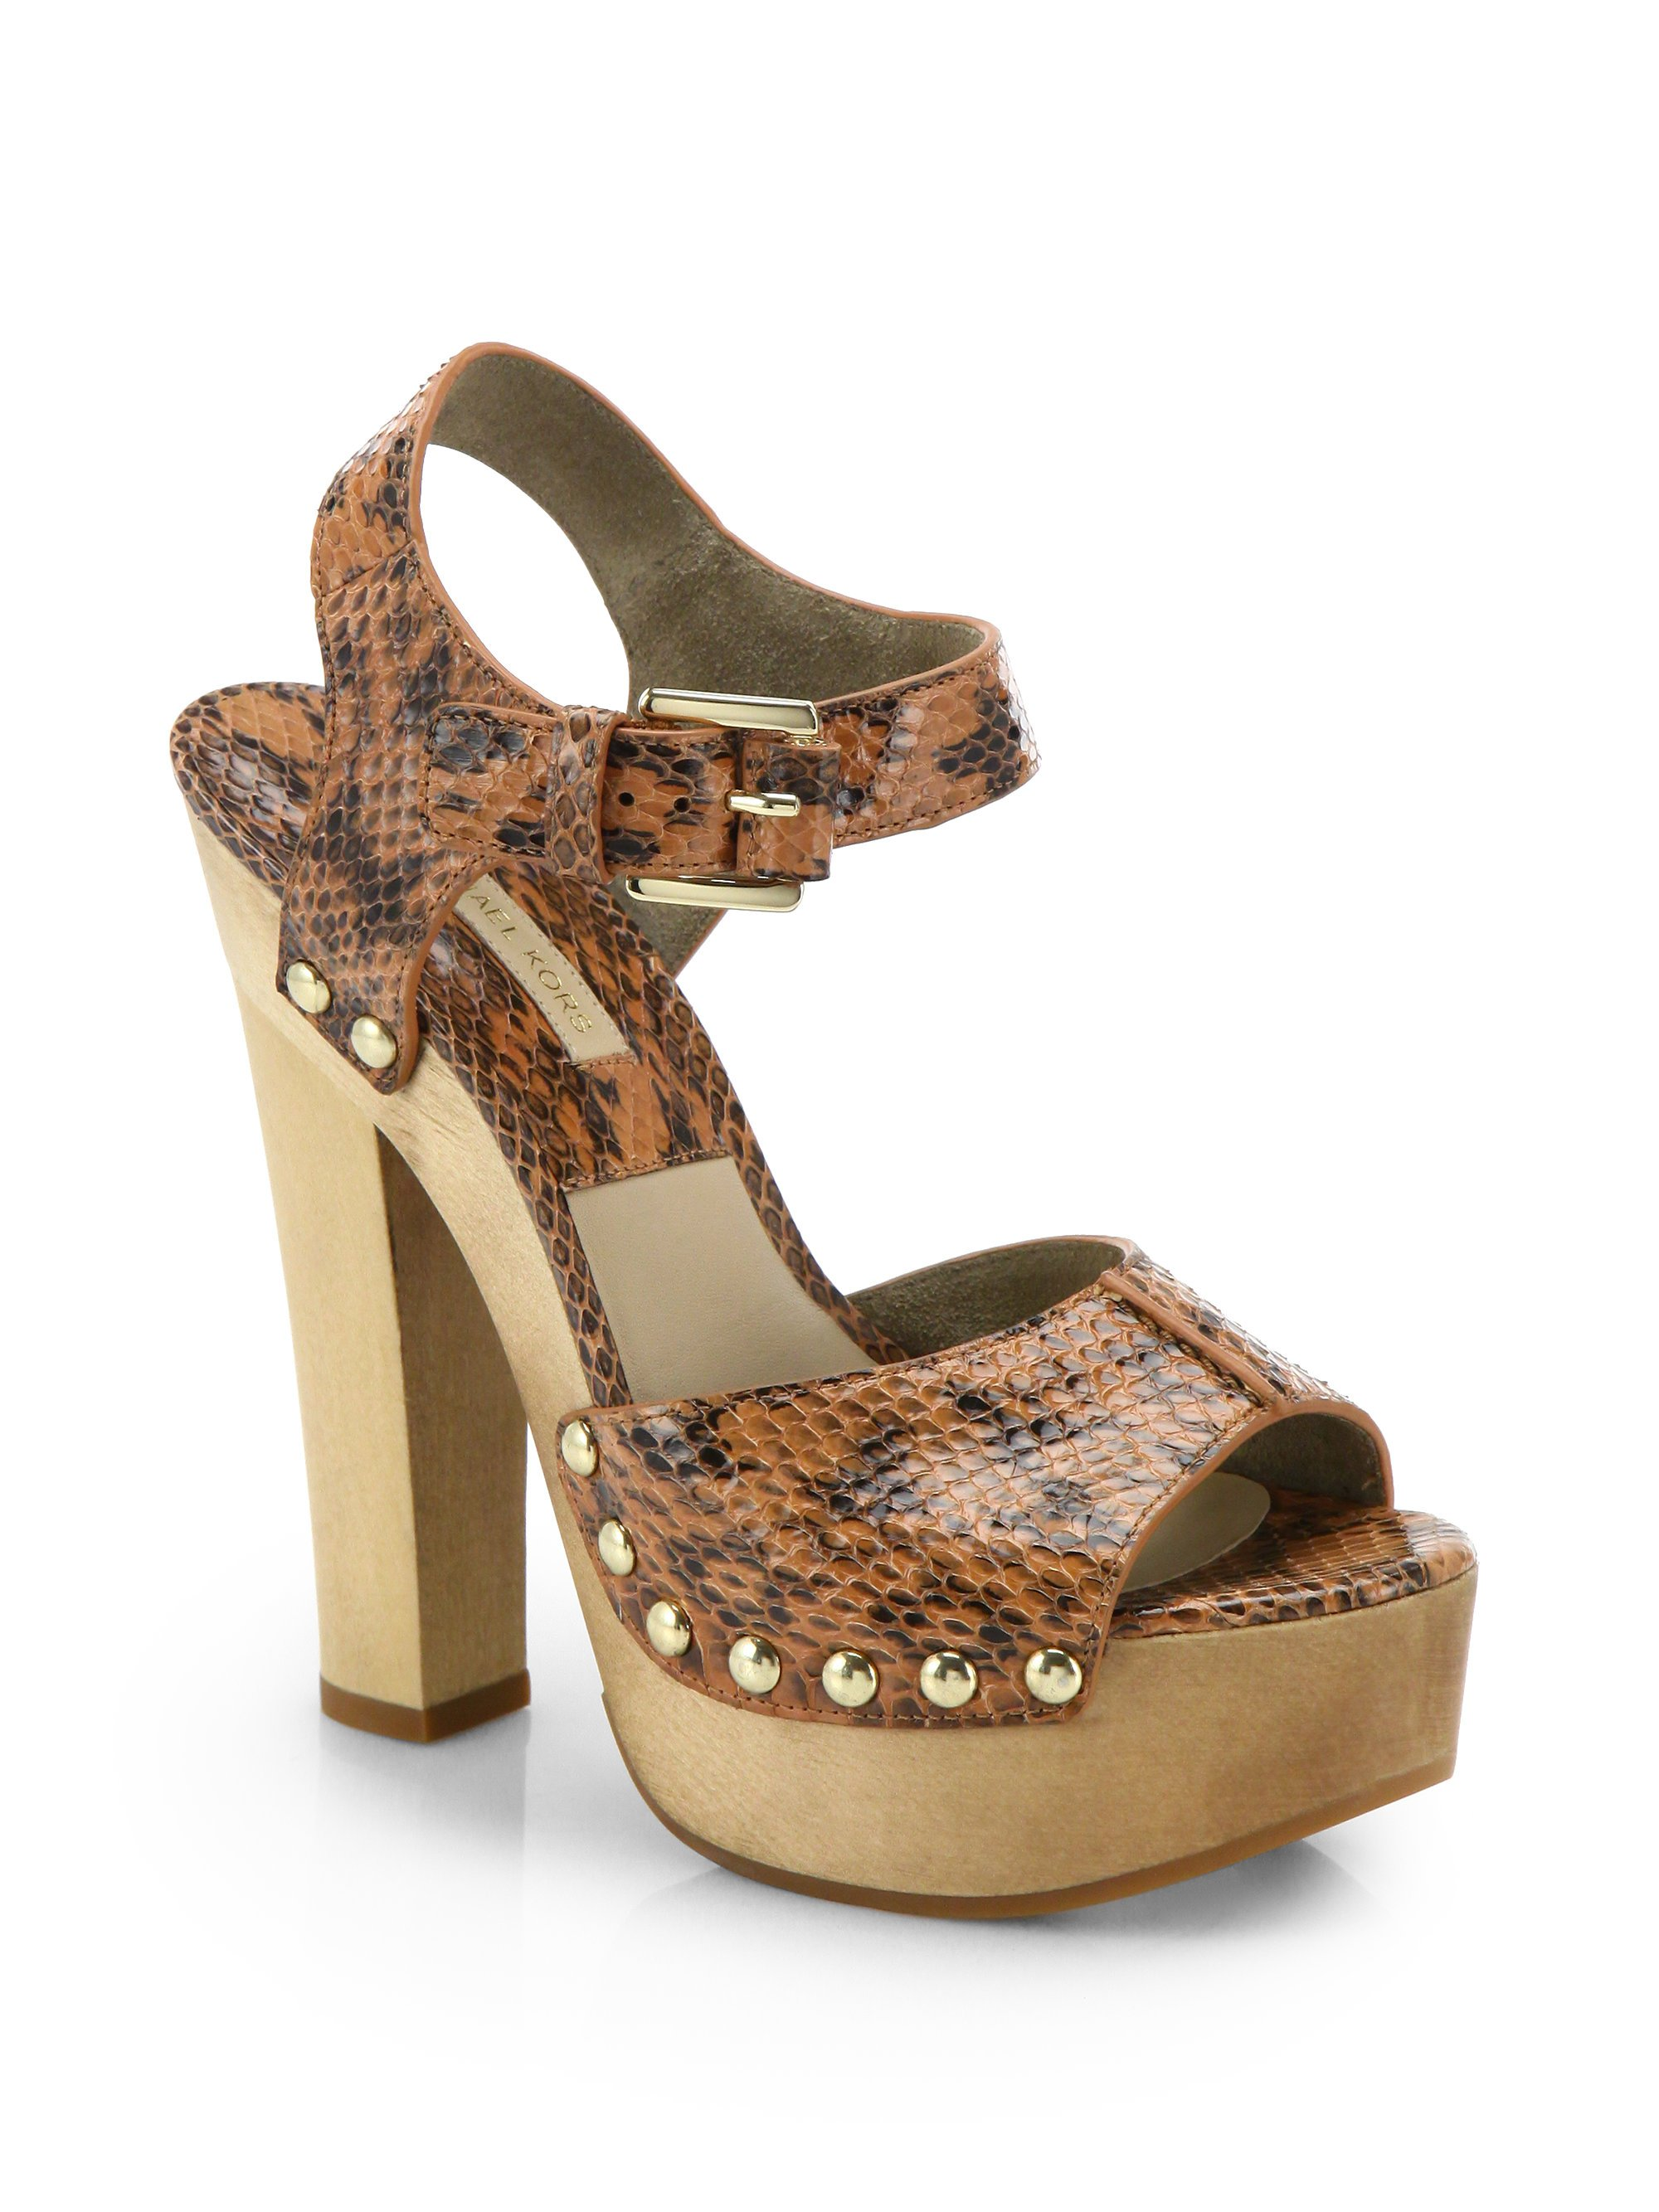 c8d2502ad39b Michael Kors Annabell Studded Snakeskin Platform Sandals in Brown - Lyst